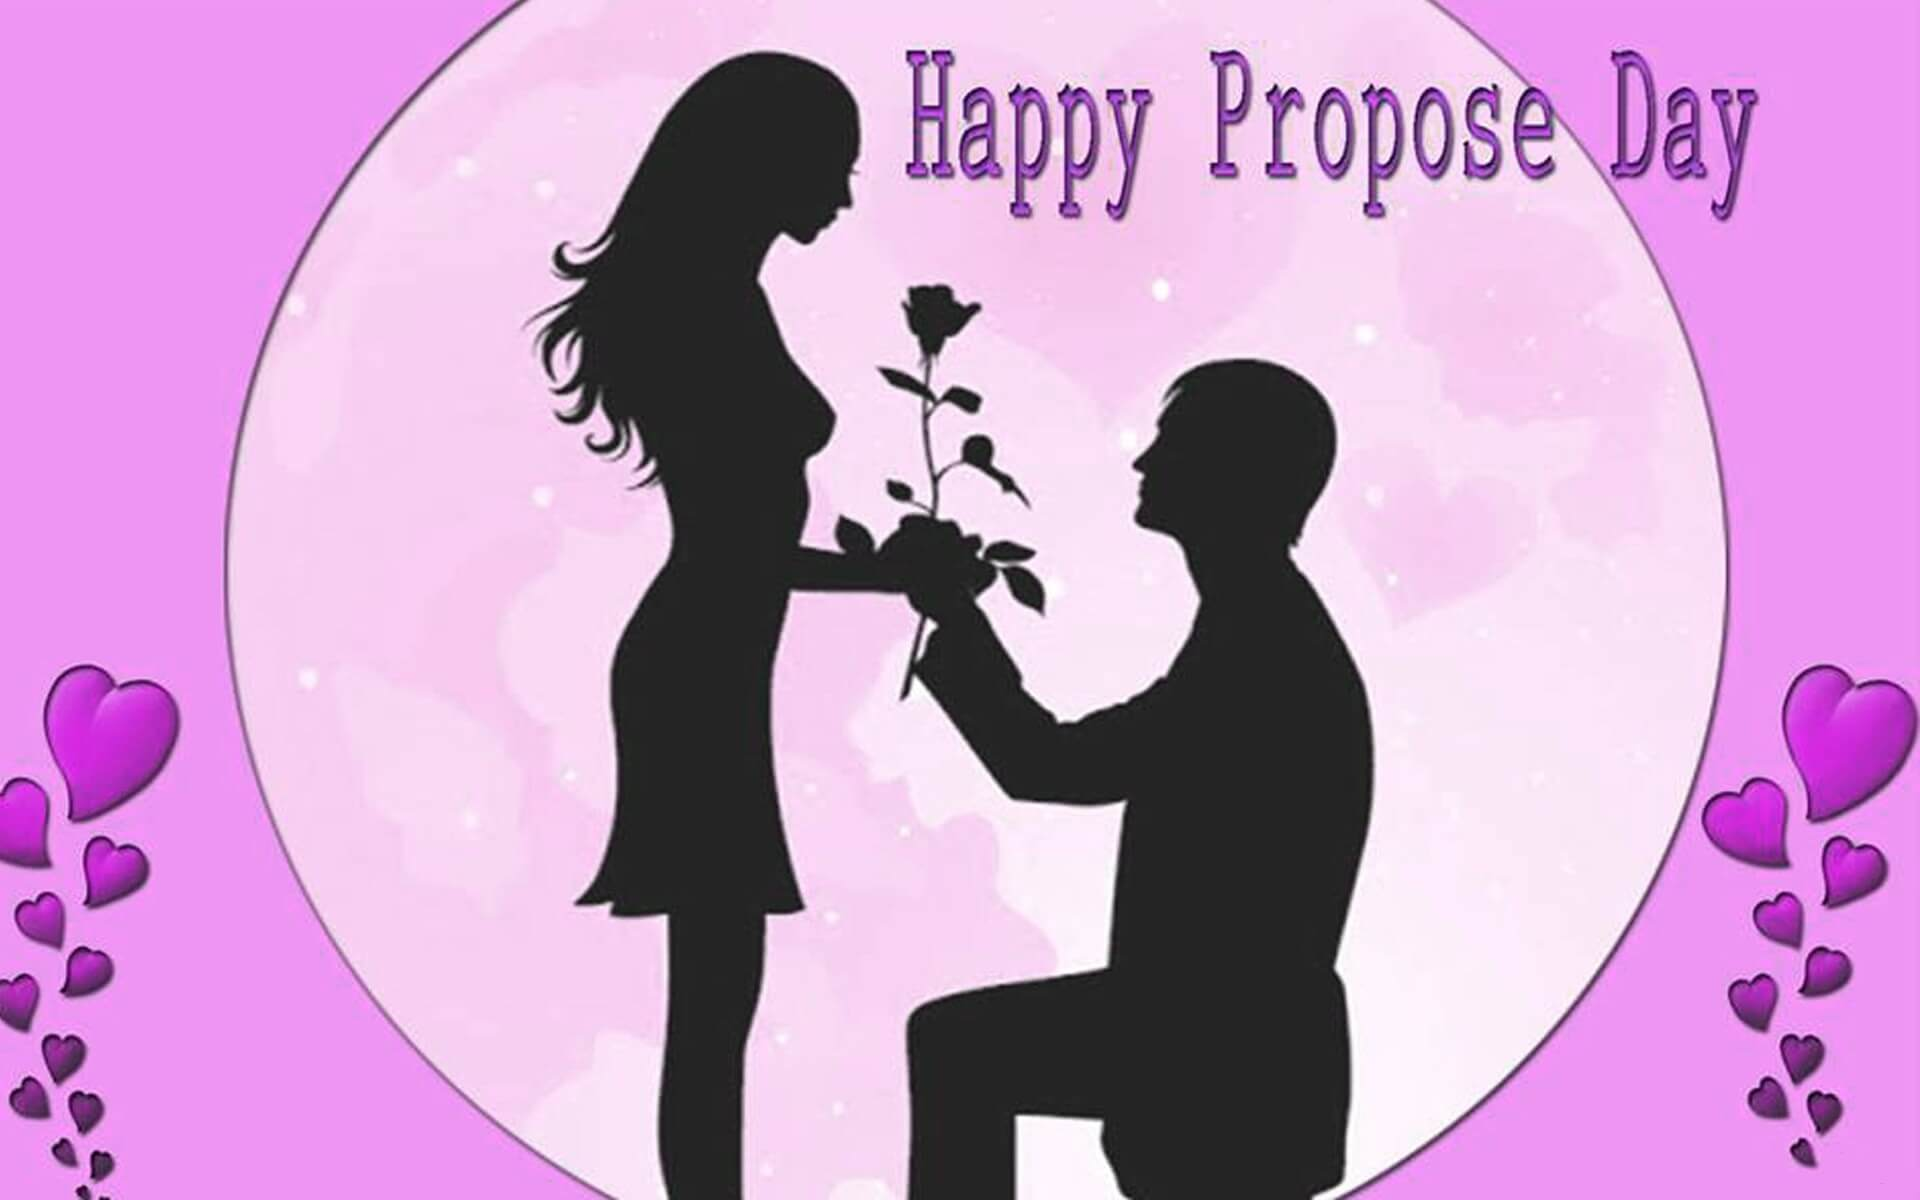 Cute Couples Wallpaper Free Download Propose Day Wallpapers Hd Wallpapers